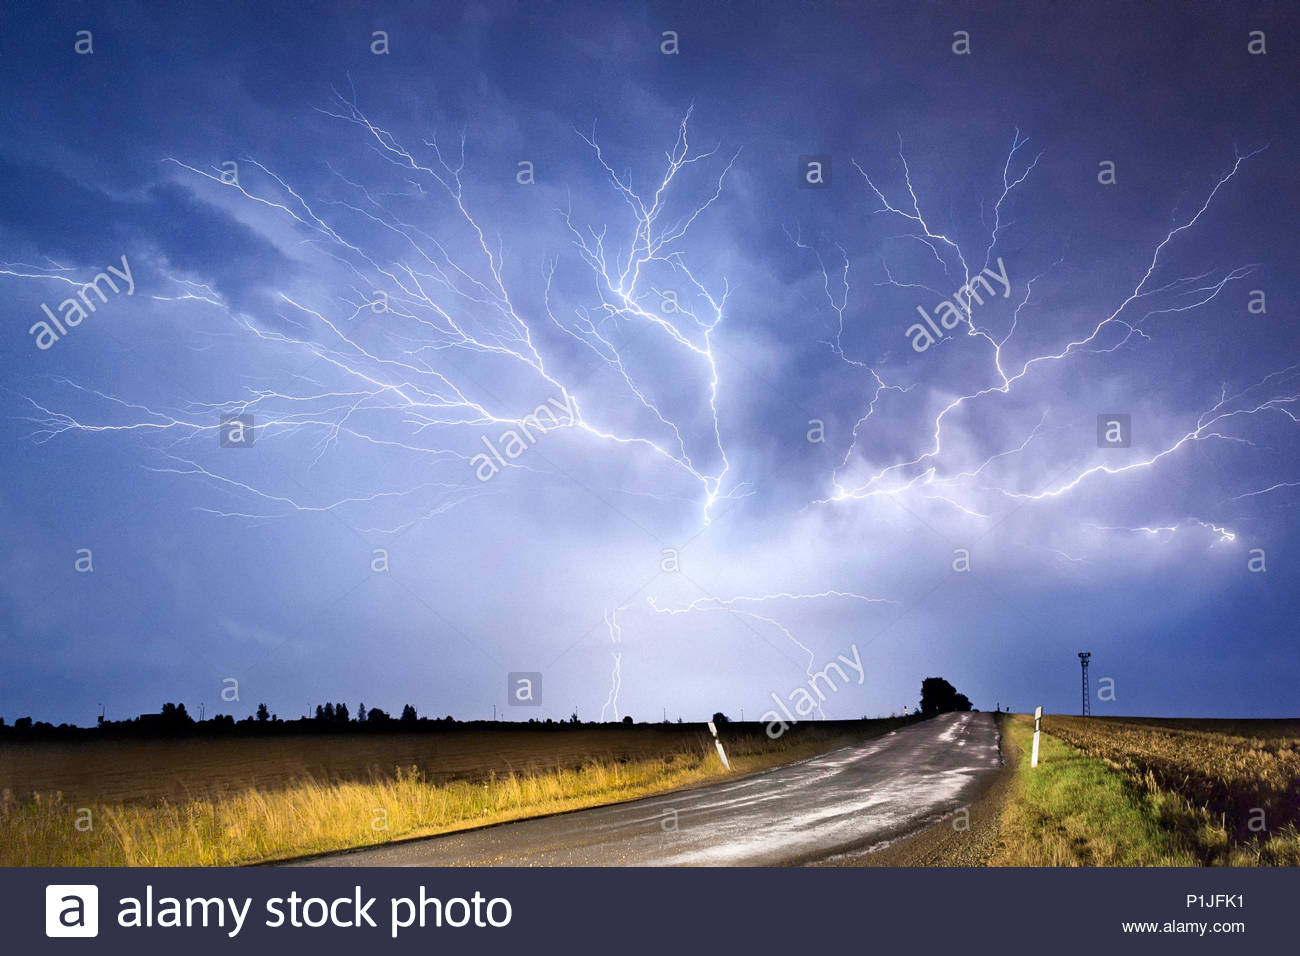 Crawler, cc- and cg-lightning on August 22nd 2012 on the backside of a thunderstorm, Jägerberg, Jena, Thuringia, Germany - Stock Image